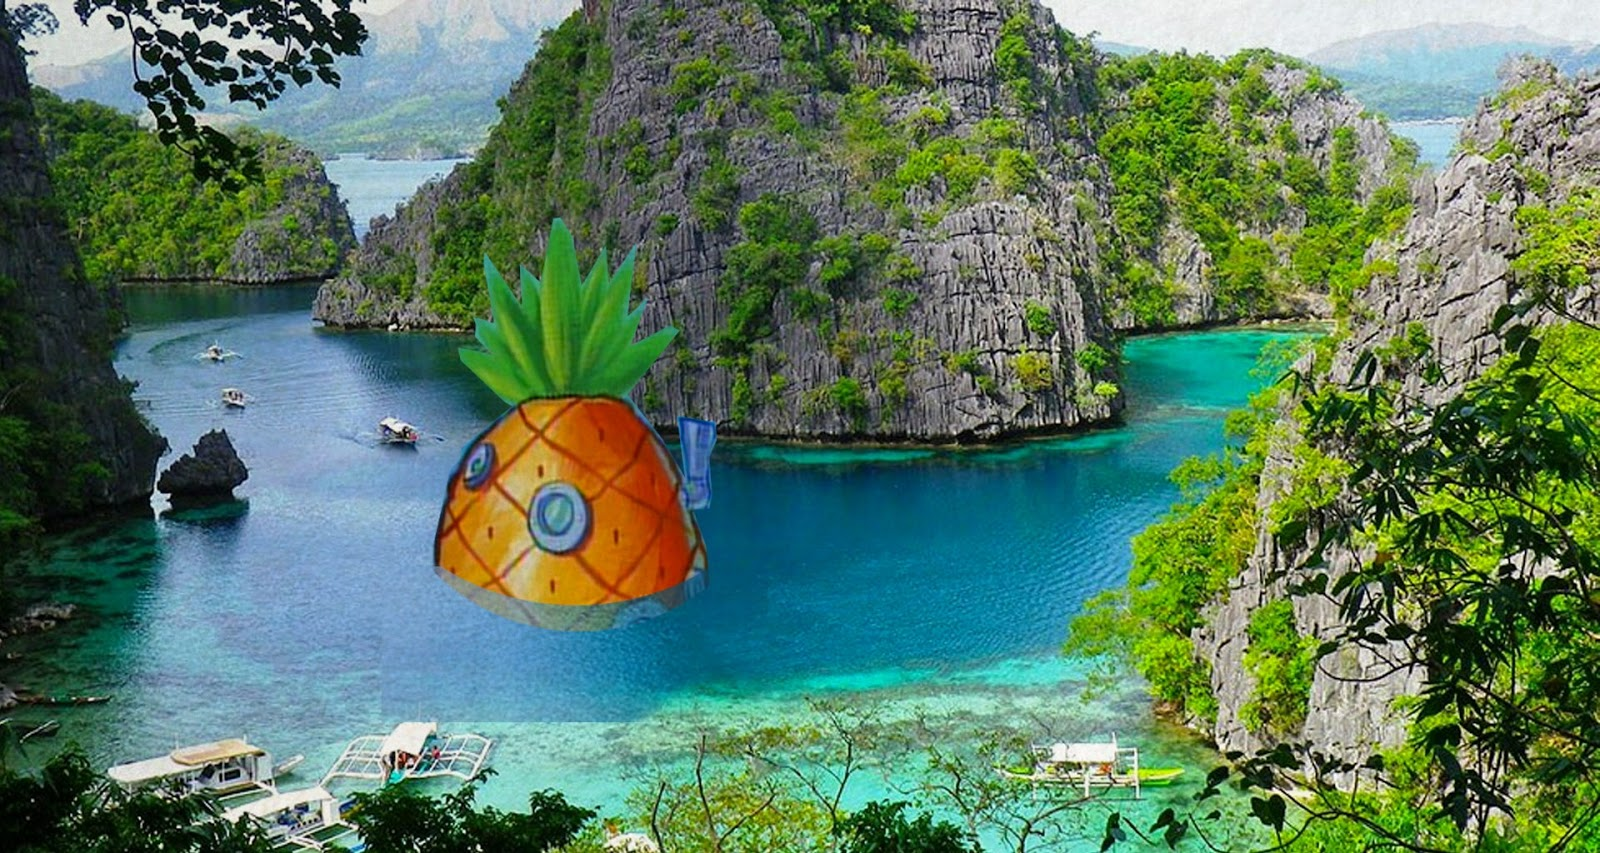 Nickelodeon resort project in Coron cancelled